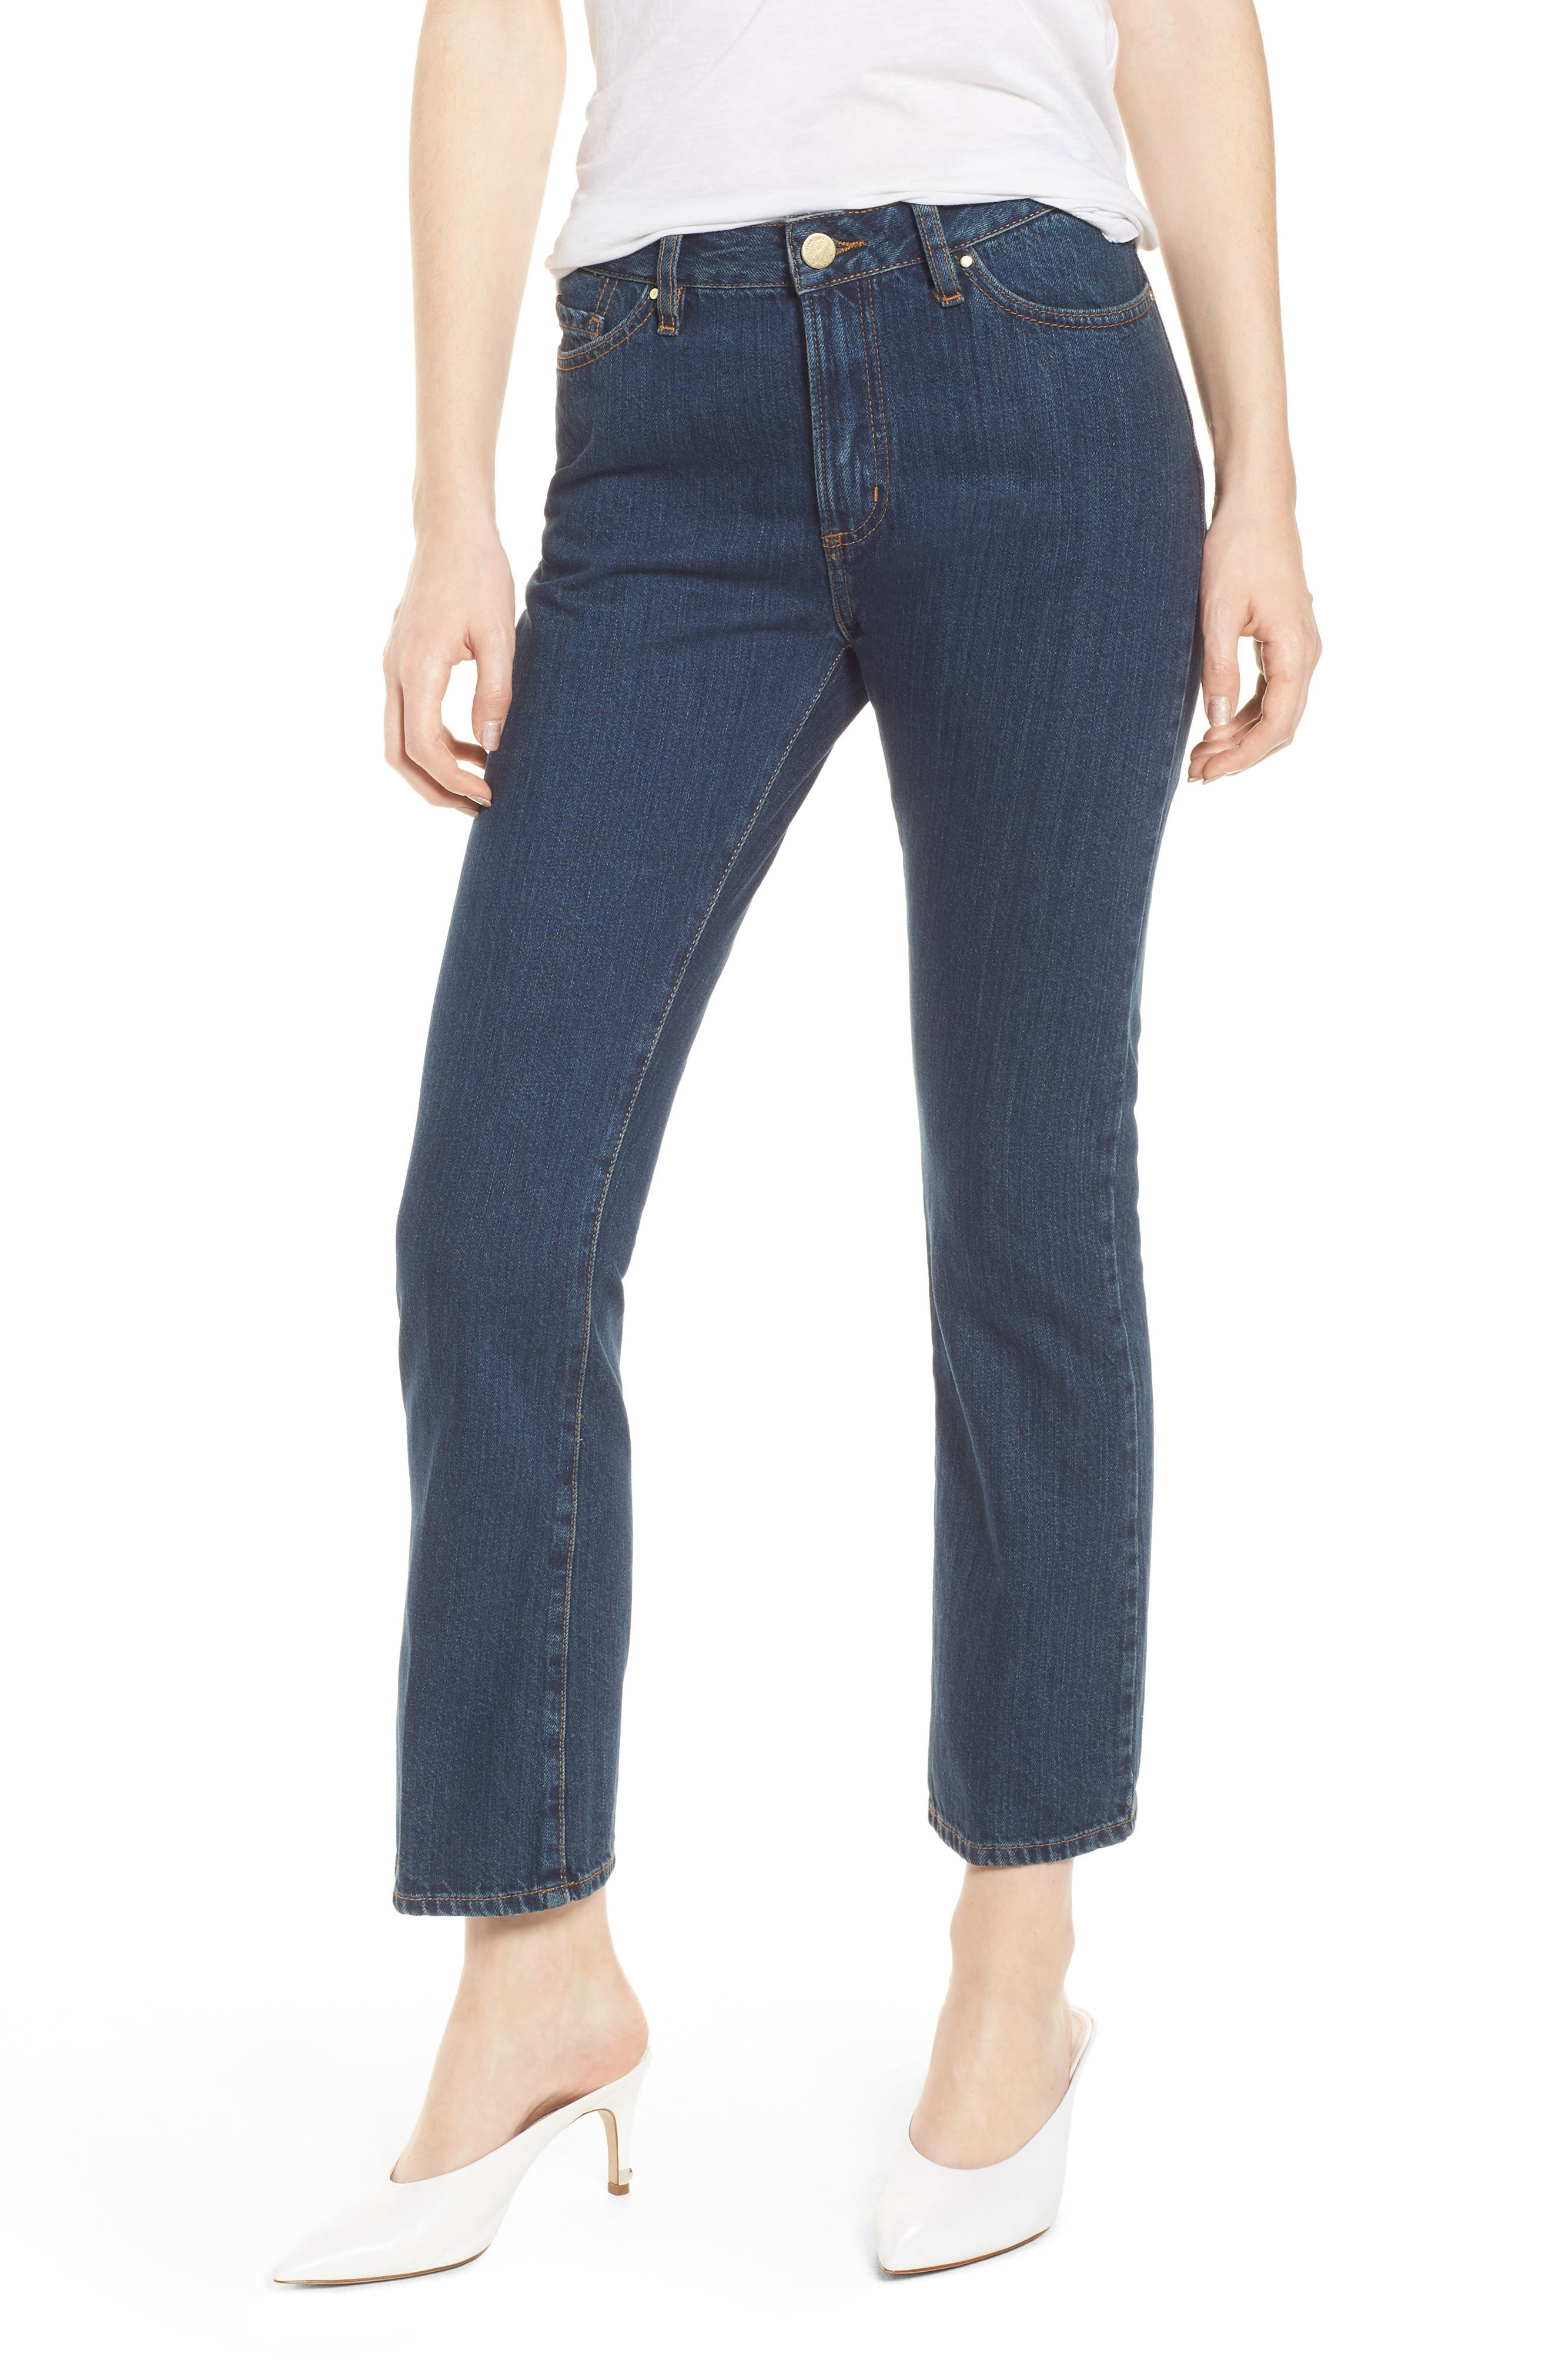 Sézane 1970 The Flared Crop Jeans